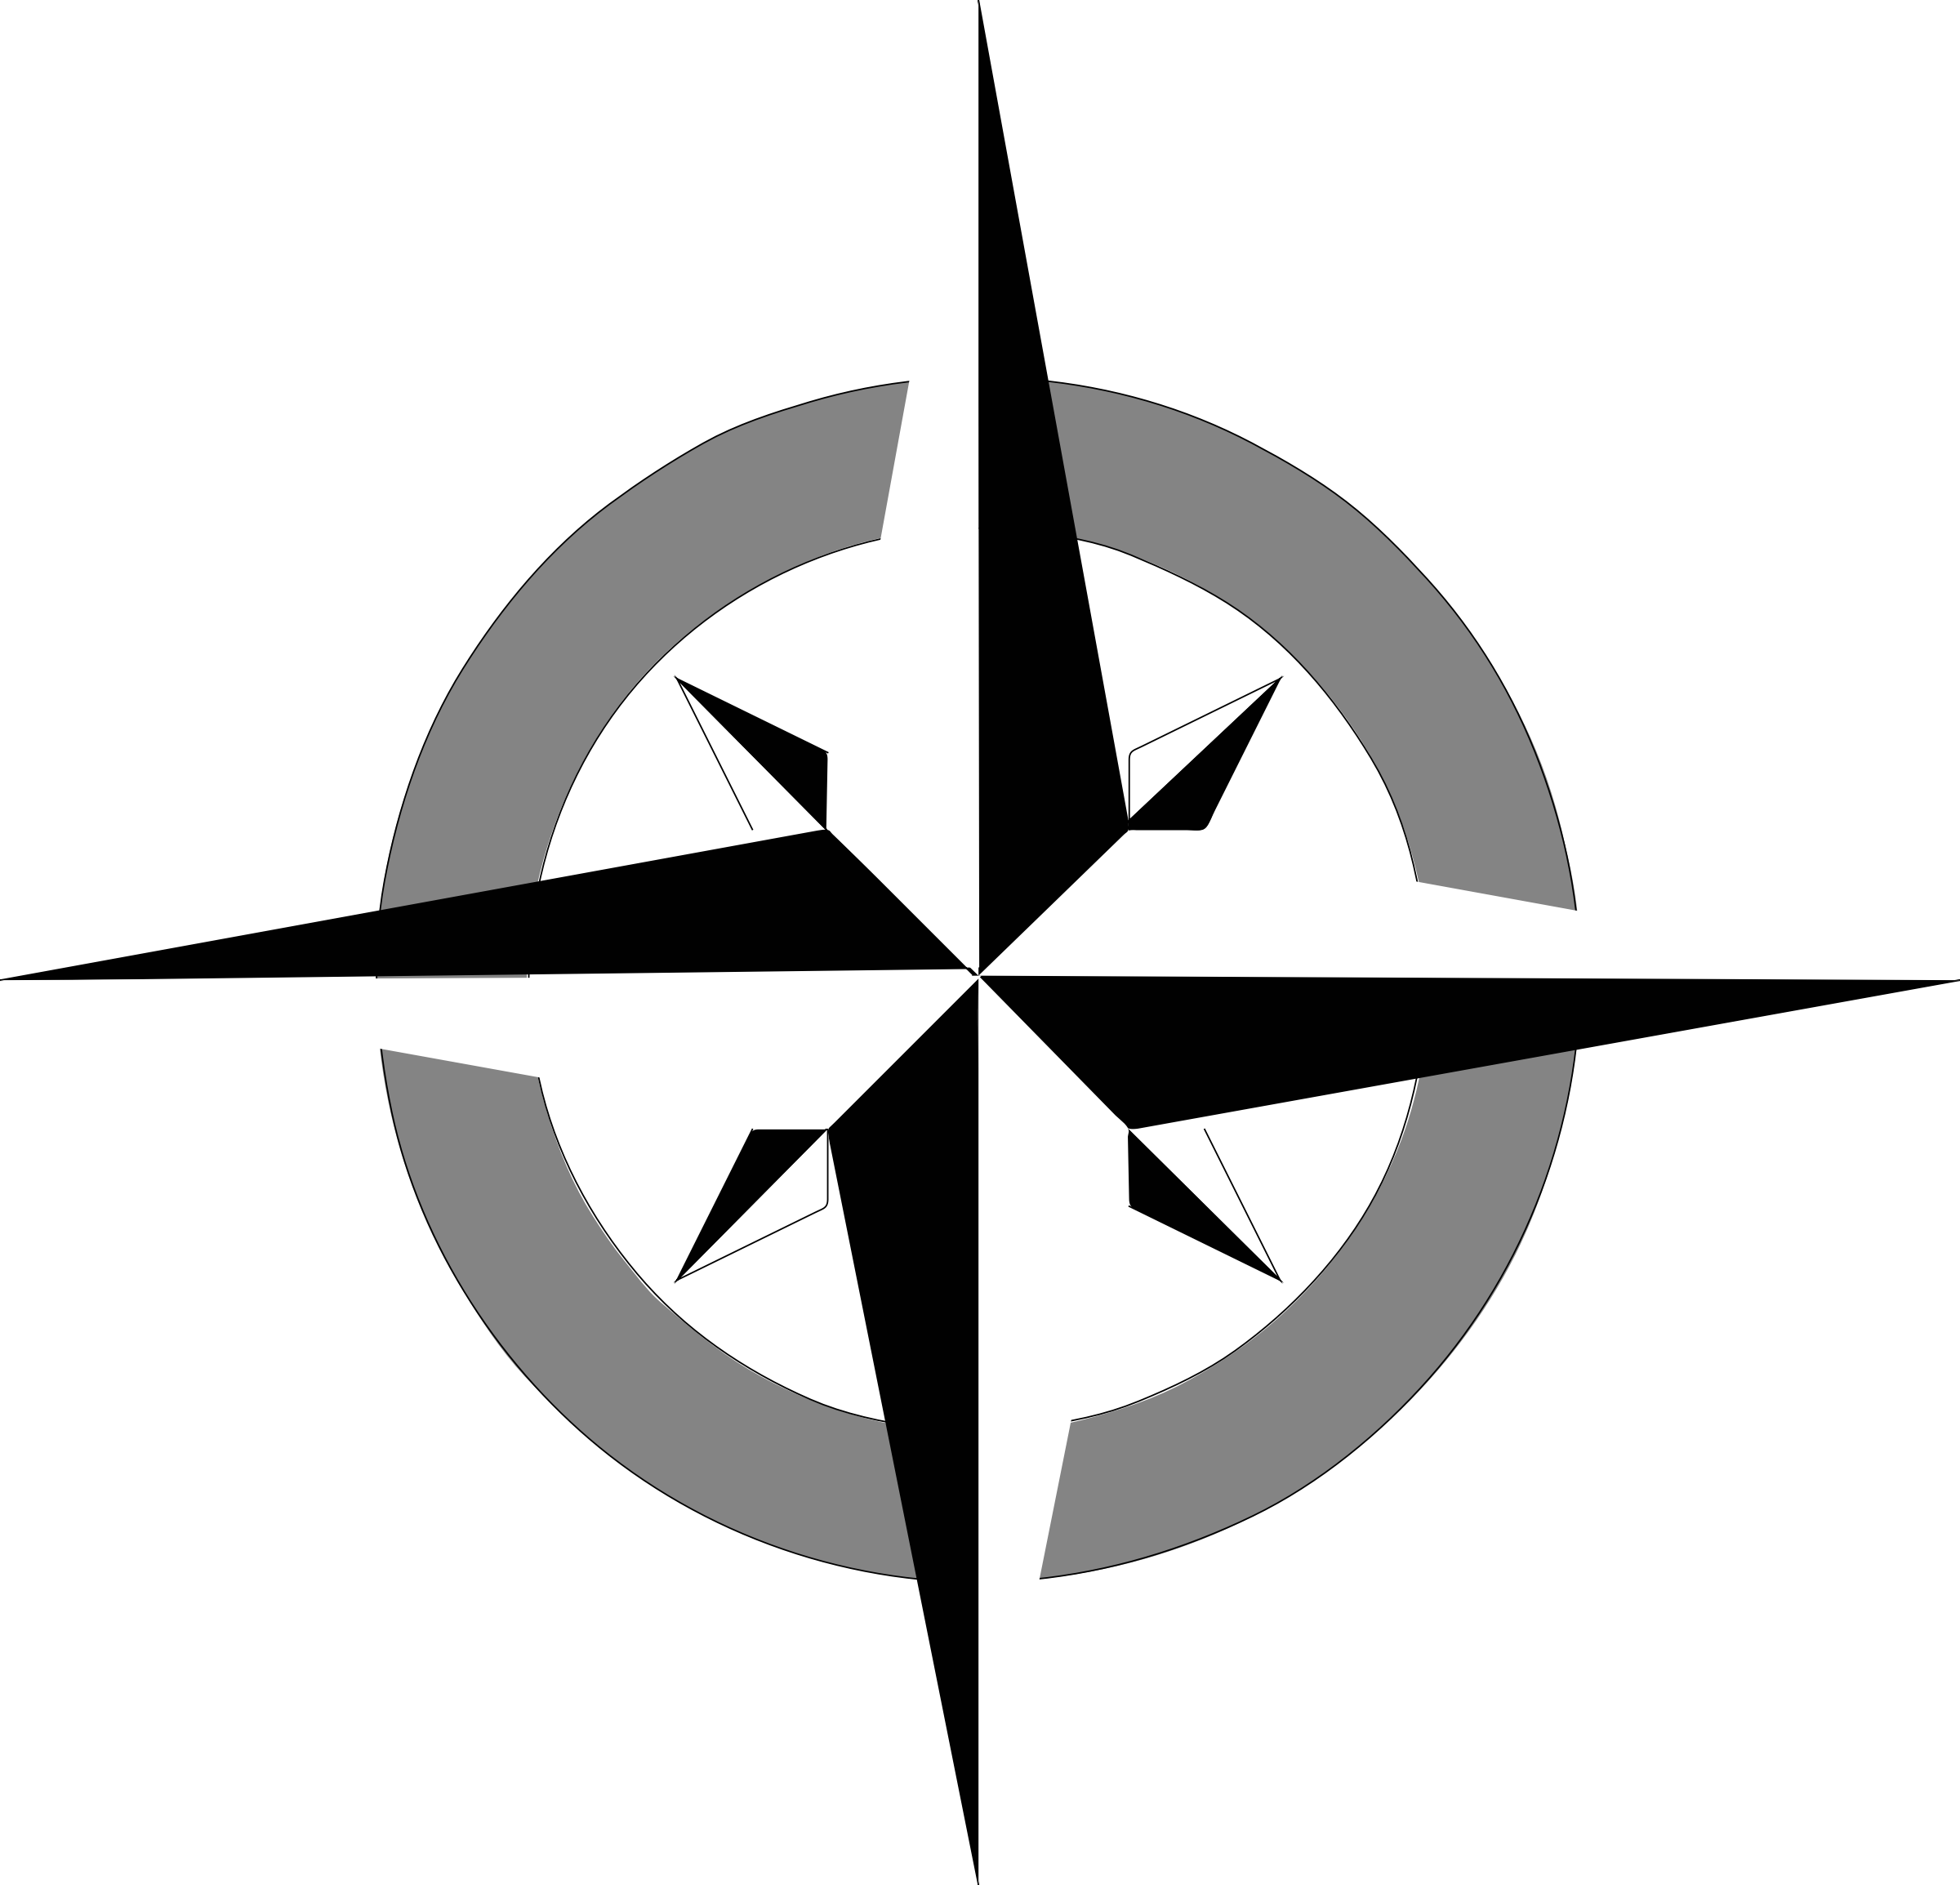 compass rose 2 by Anonymous